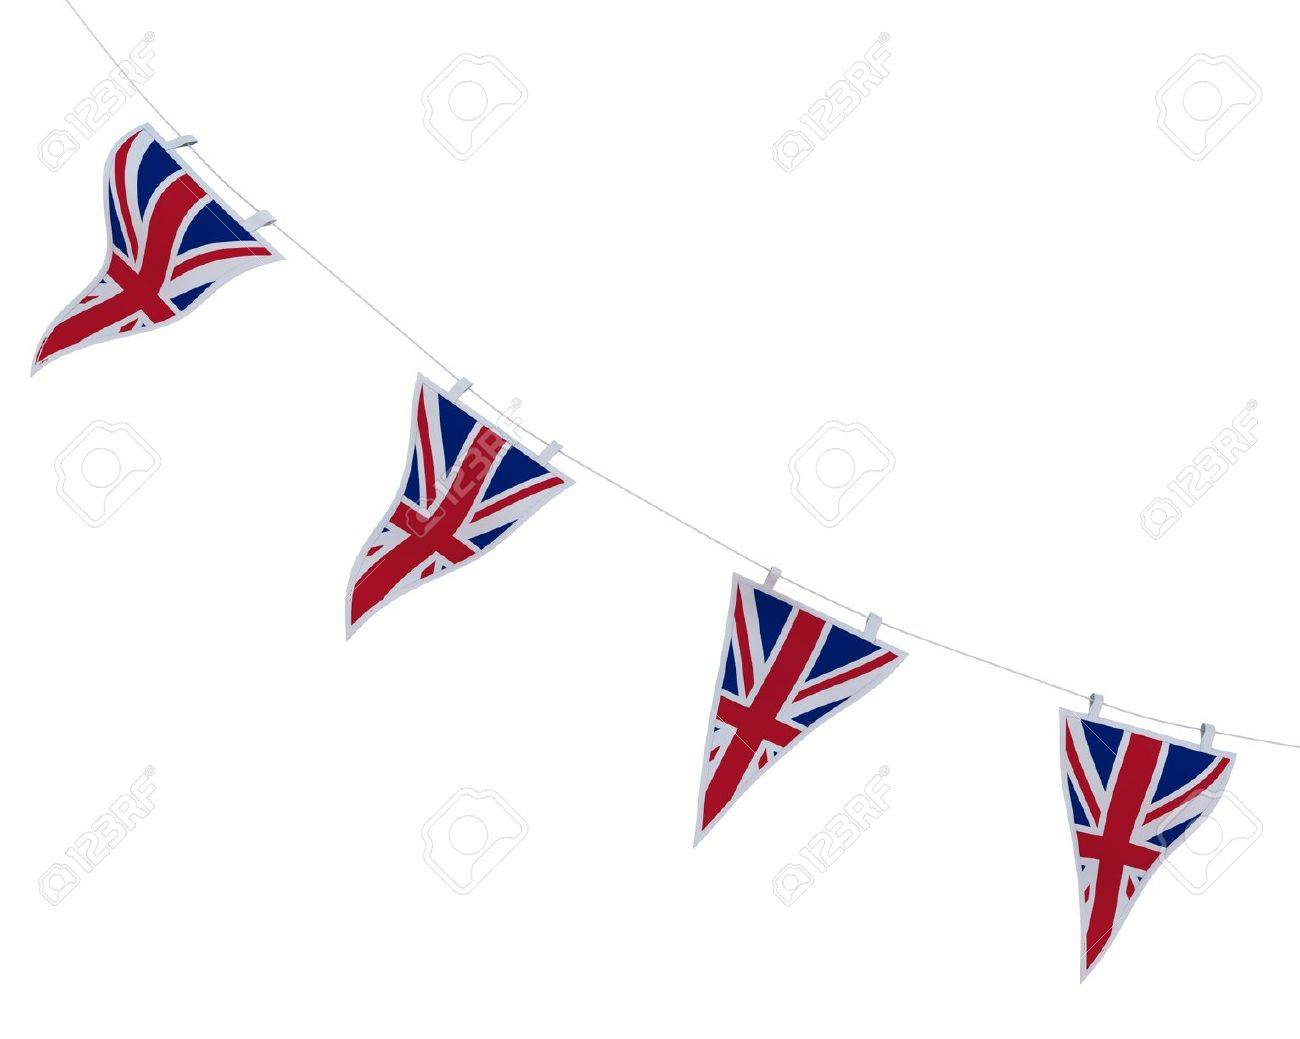 Fein Union Jack Flagge Vorlage Galerie - Entry Level Resume Vorlagen ...